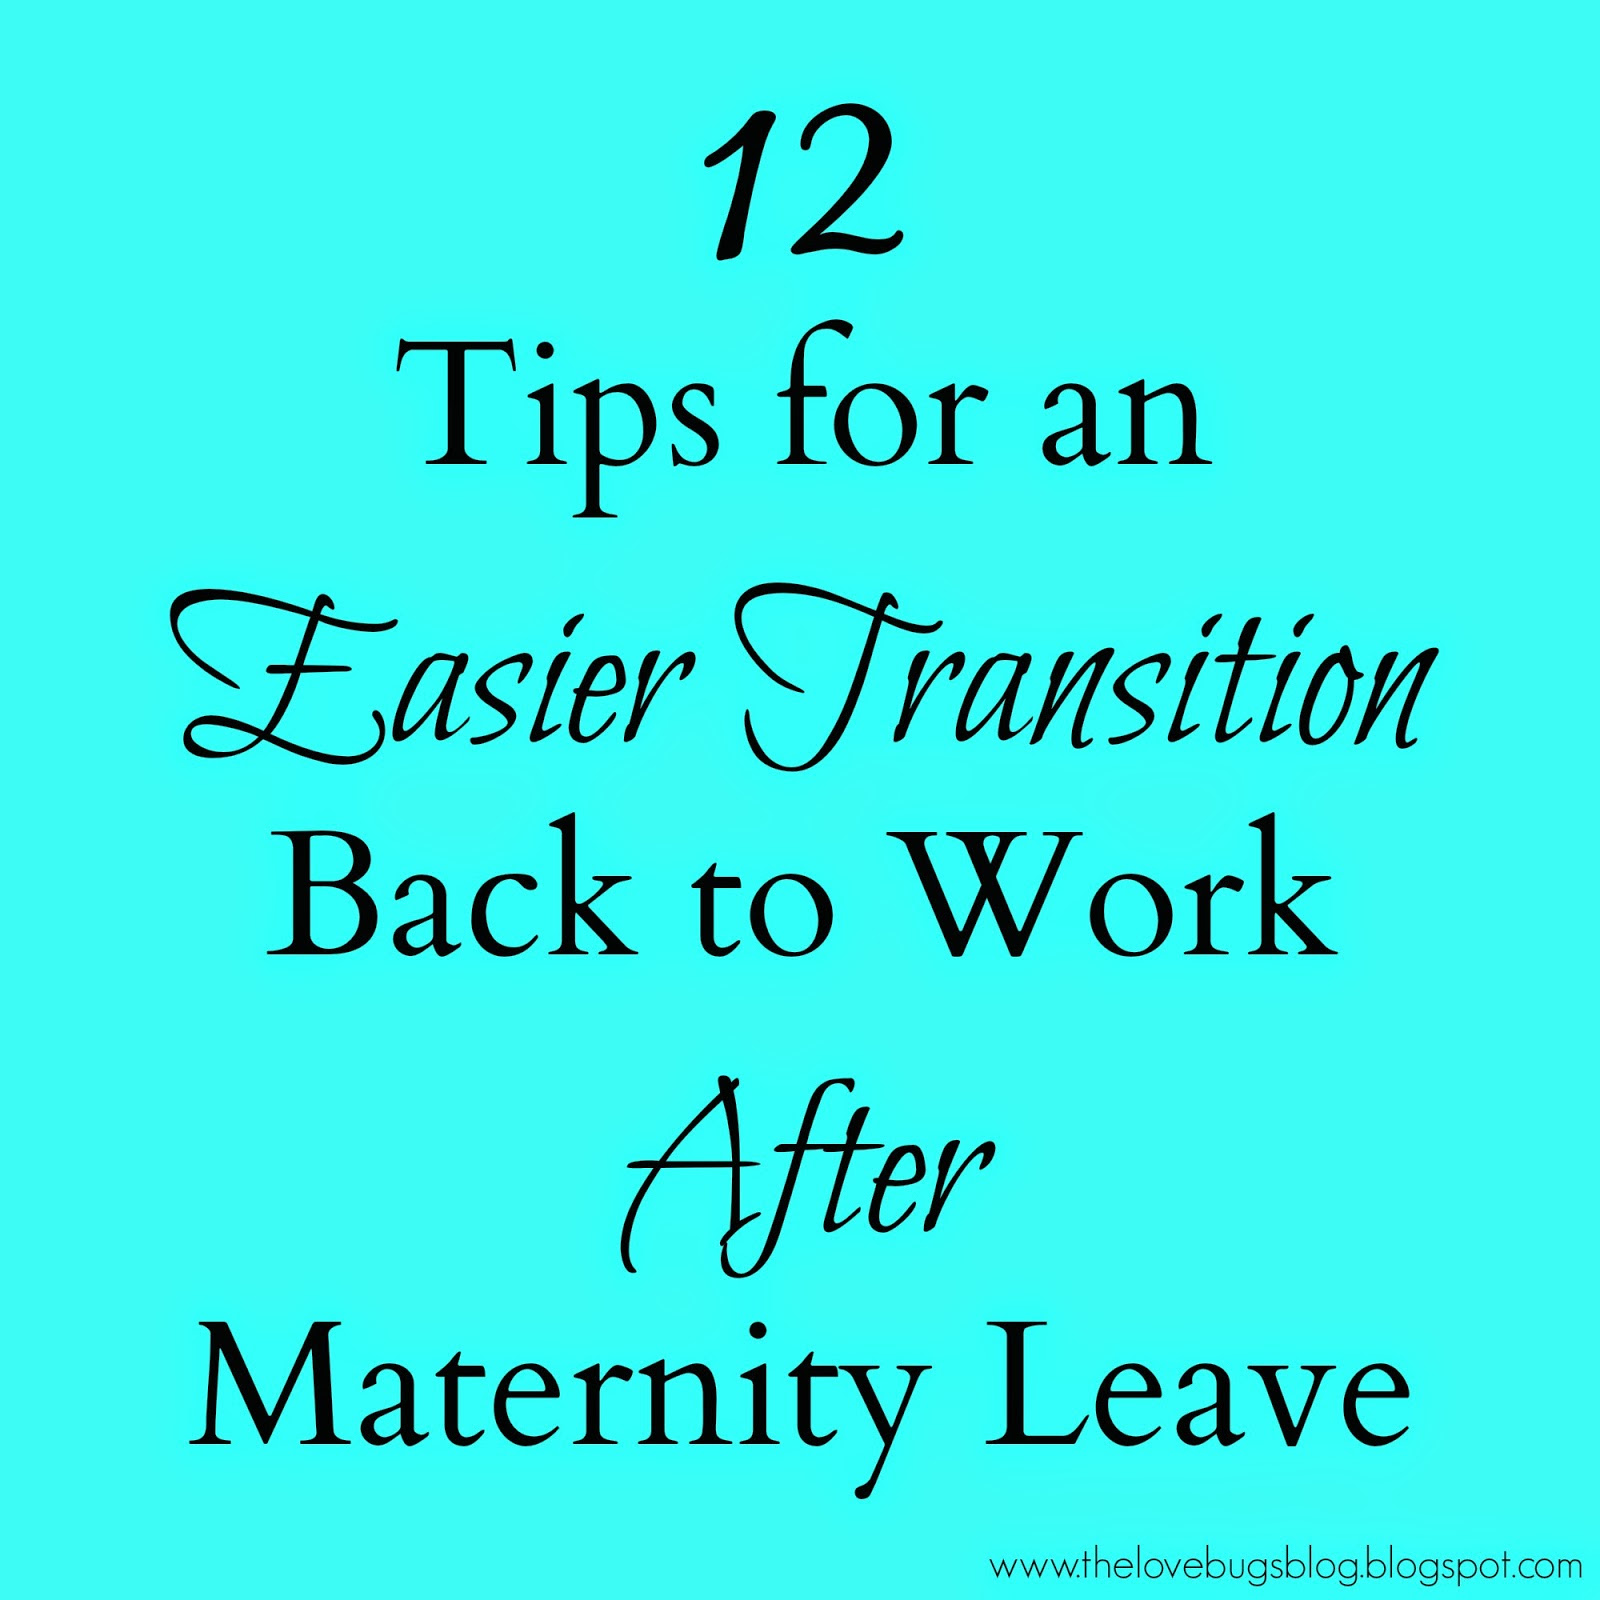 Quotes About Returning Back To Work 17 Quotes